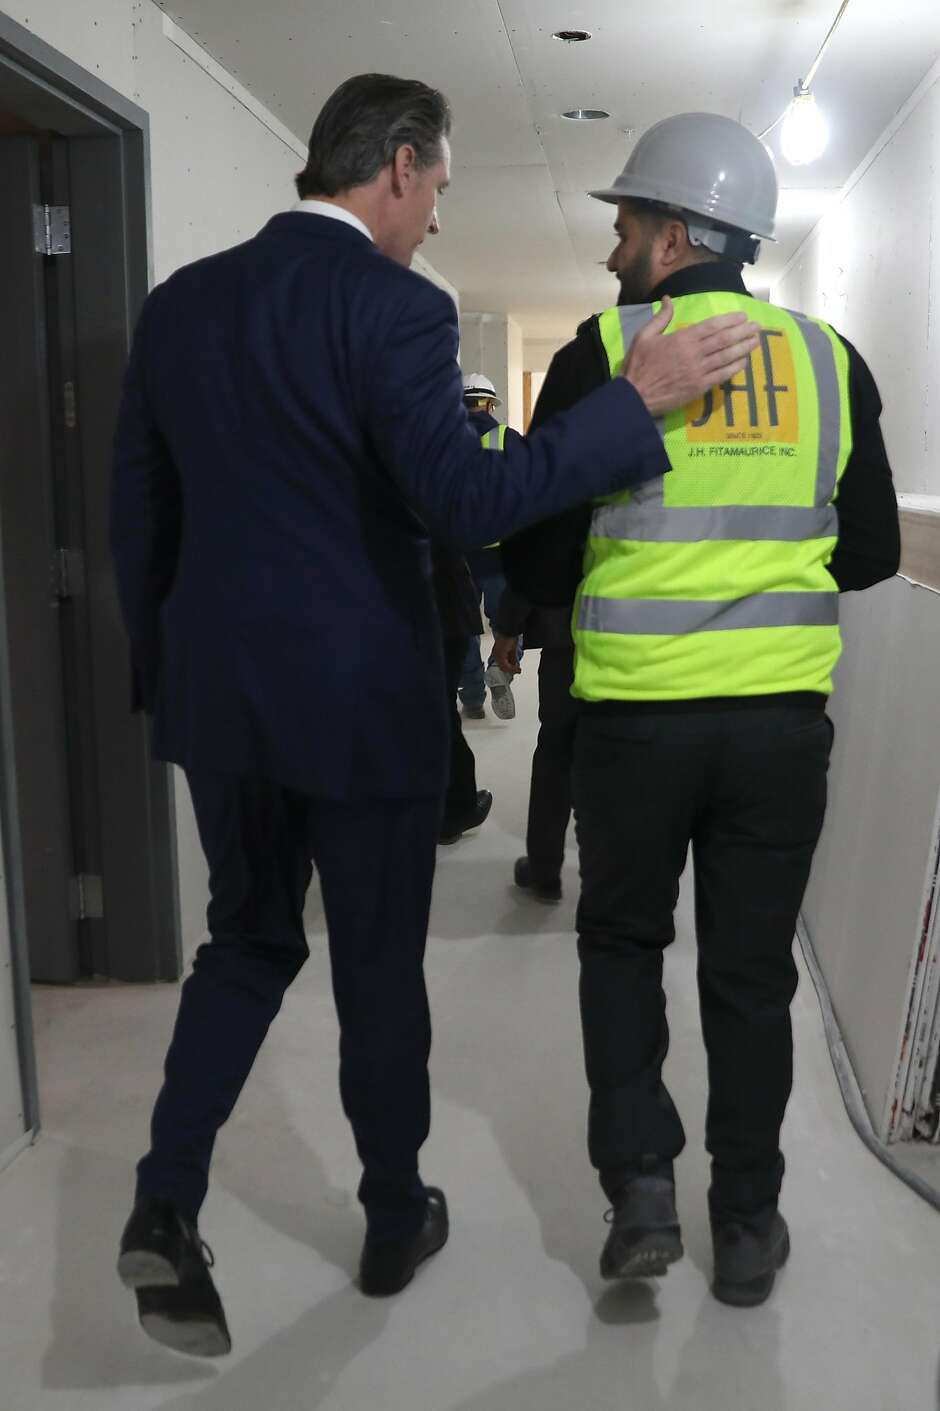 Governor Gavin Newsom takes a walk with JHF project manager Kyan Hakimi as they take a look at Estrella Vista Apartments, a new affordable housing development under construction on Tuesday, July 2, 2019, in Emeryville, Calif.